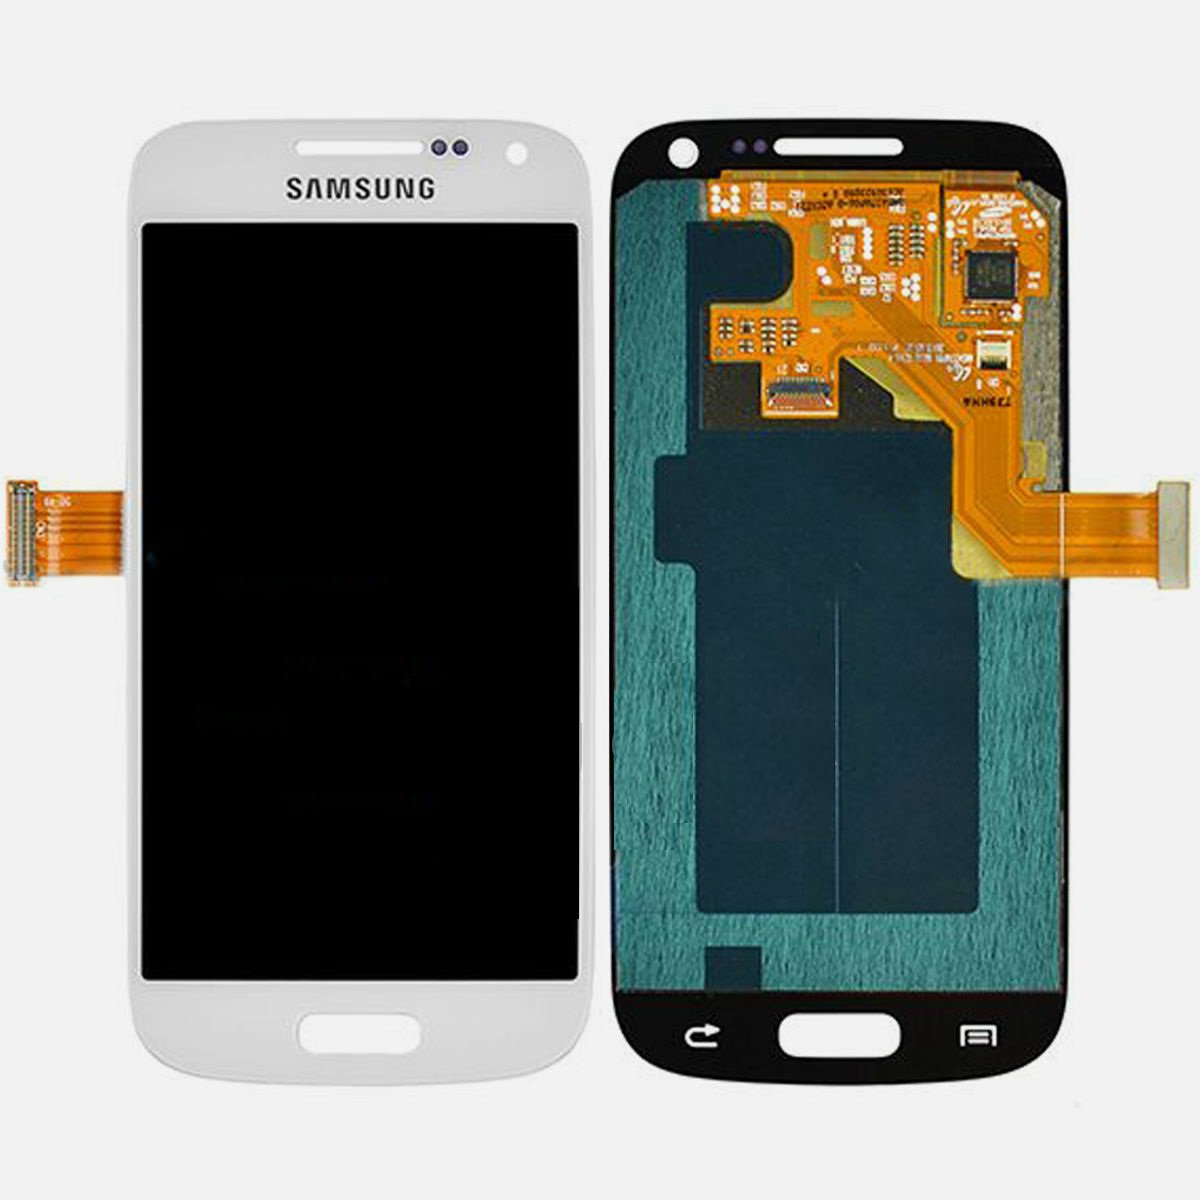 Samsung Galaxy S4 Mini i9190 i9192 i9195 LCD Display Digitizer Screen White